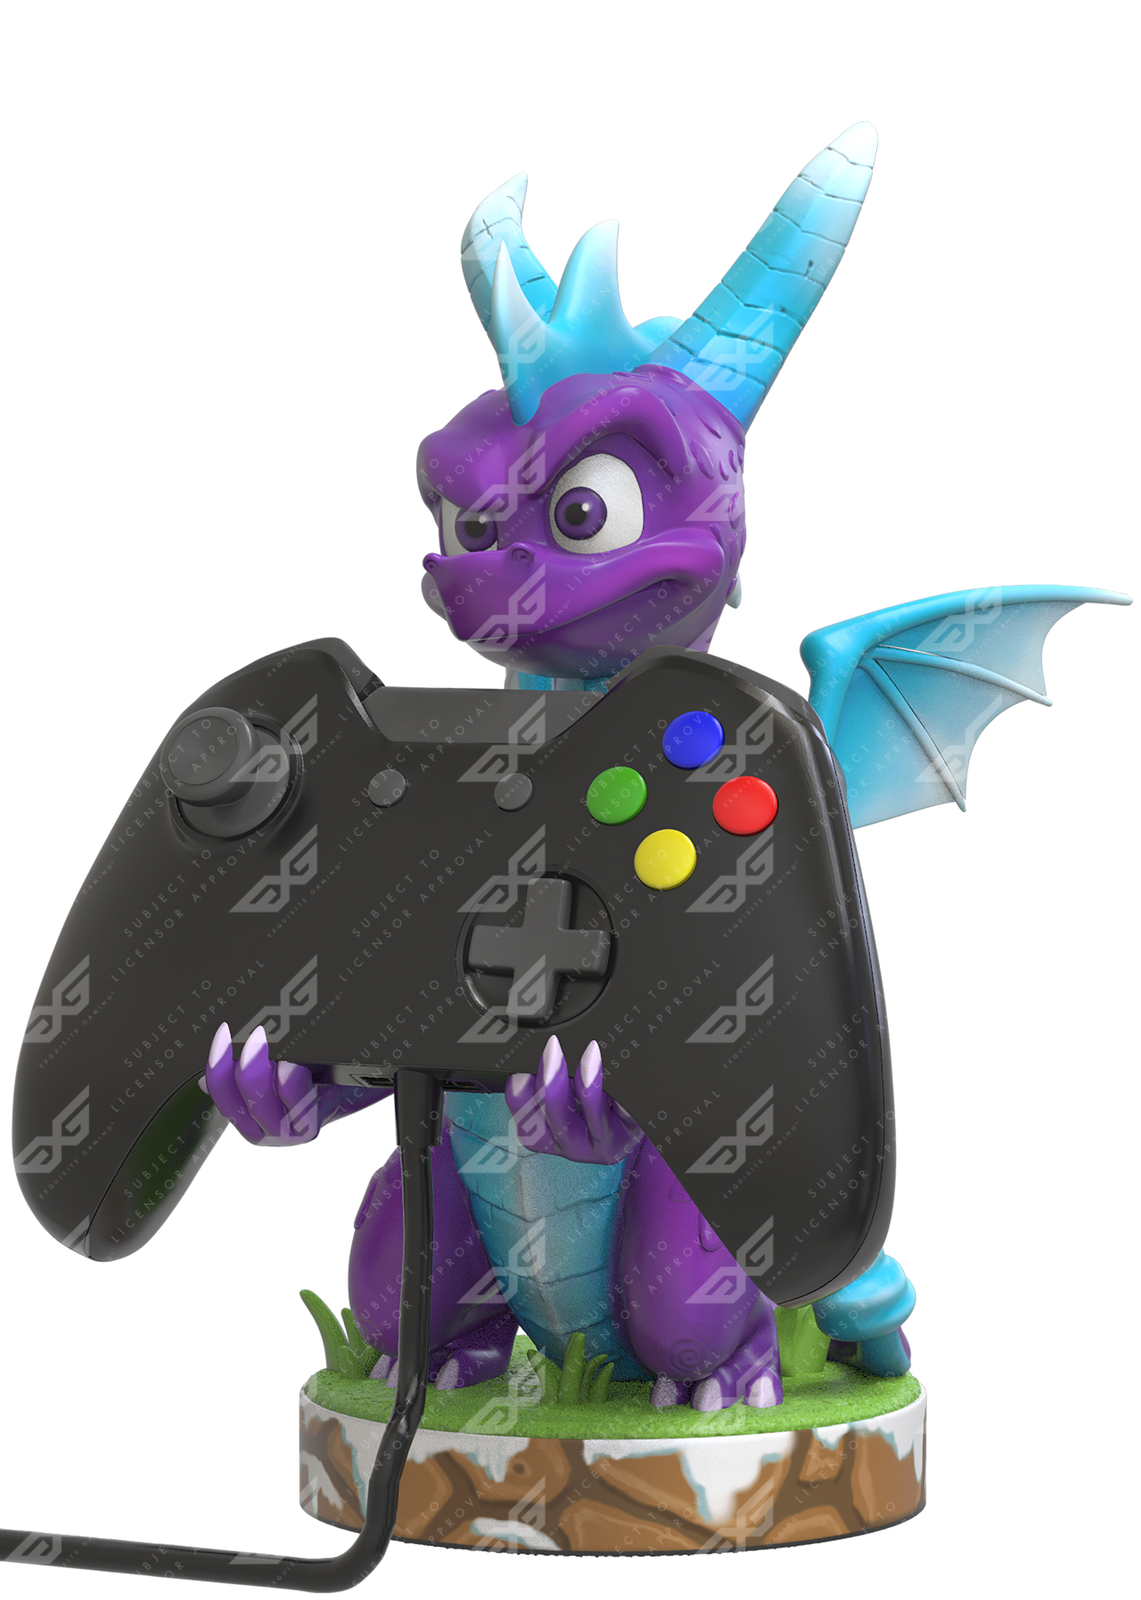 Cable Guy Controller Holder - Spyro Ice for PS4 image